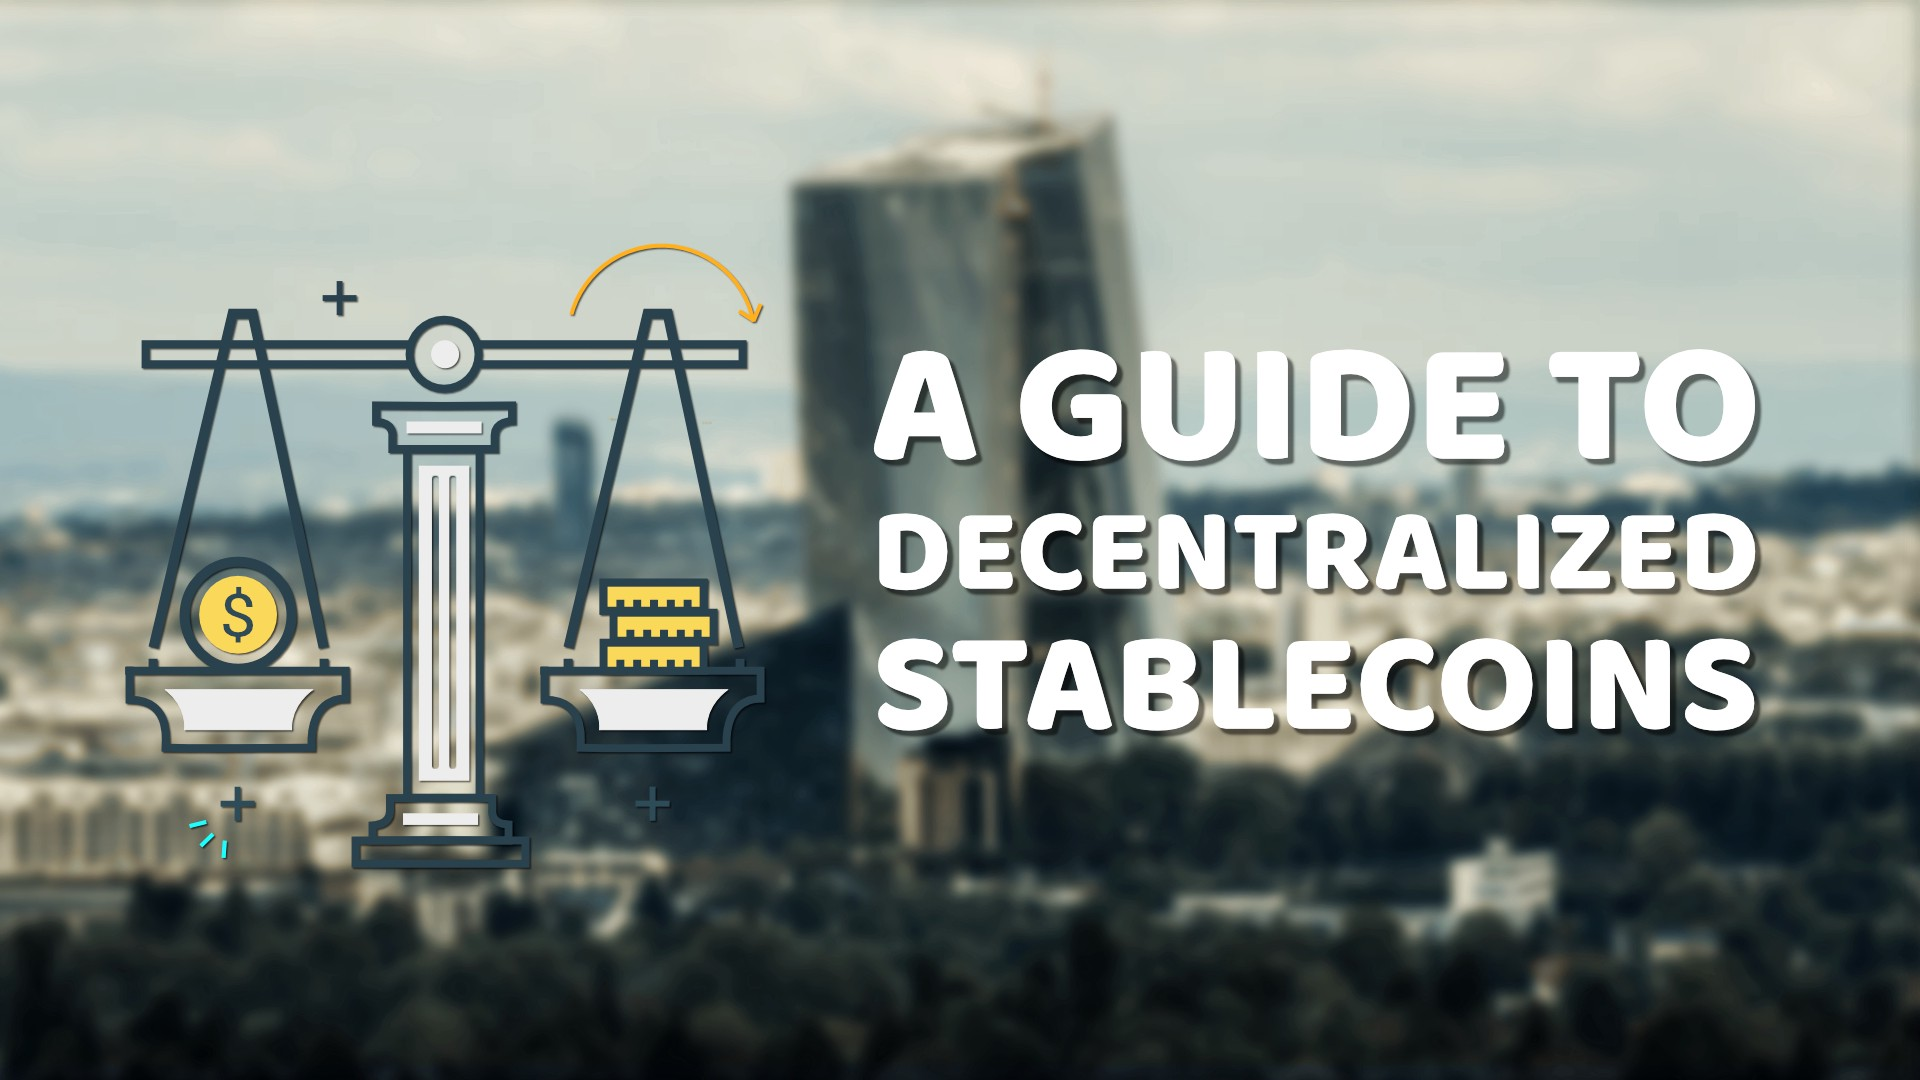 /a-comprehensive-guide-to-decentralized-stablecoins-22f66553c807 feature image